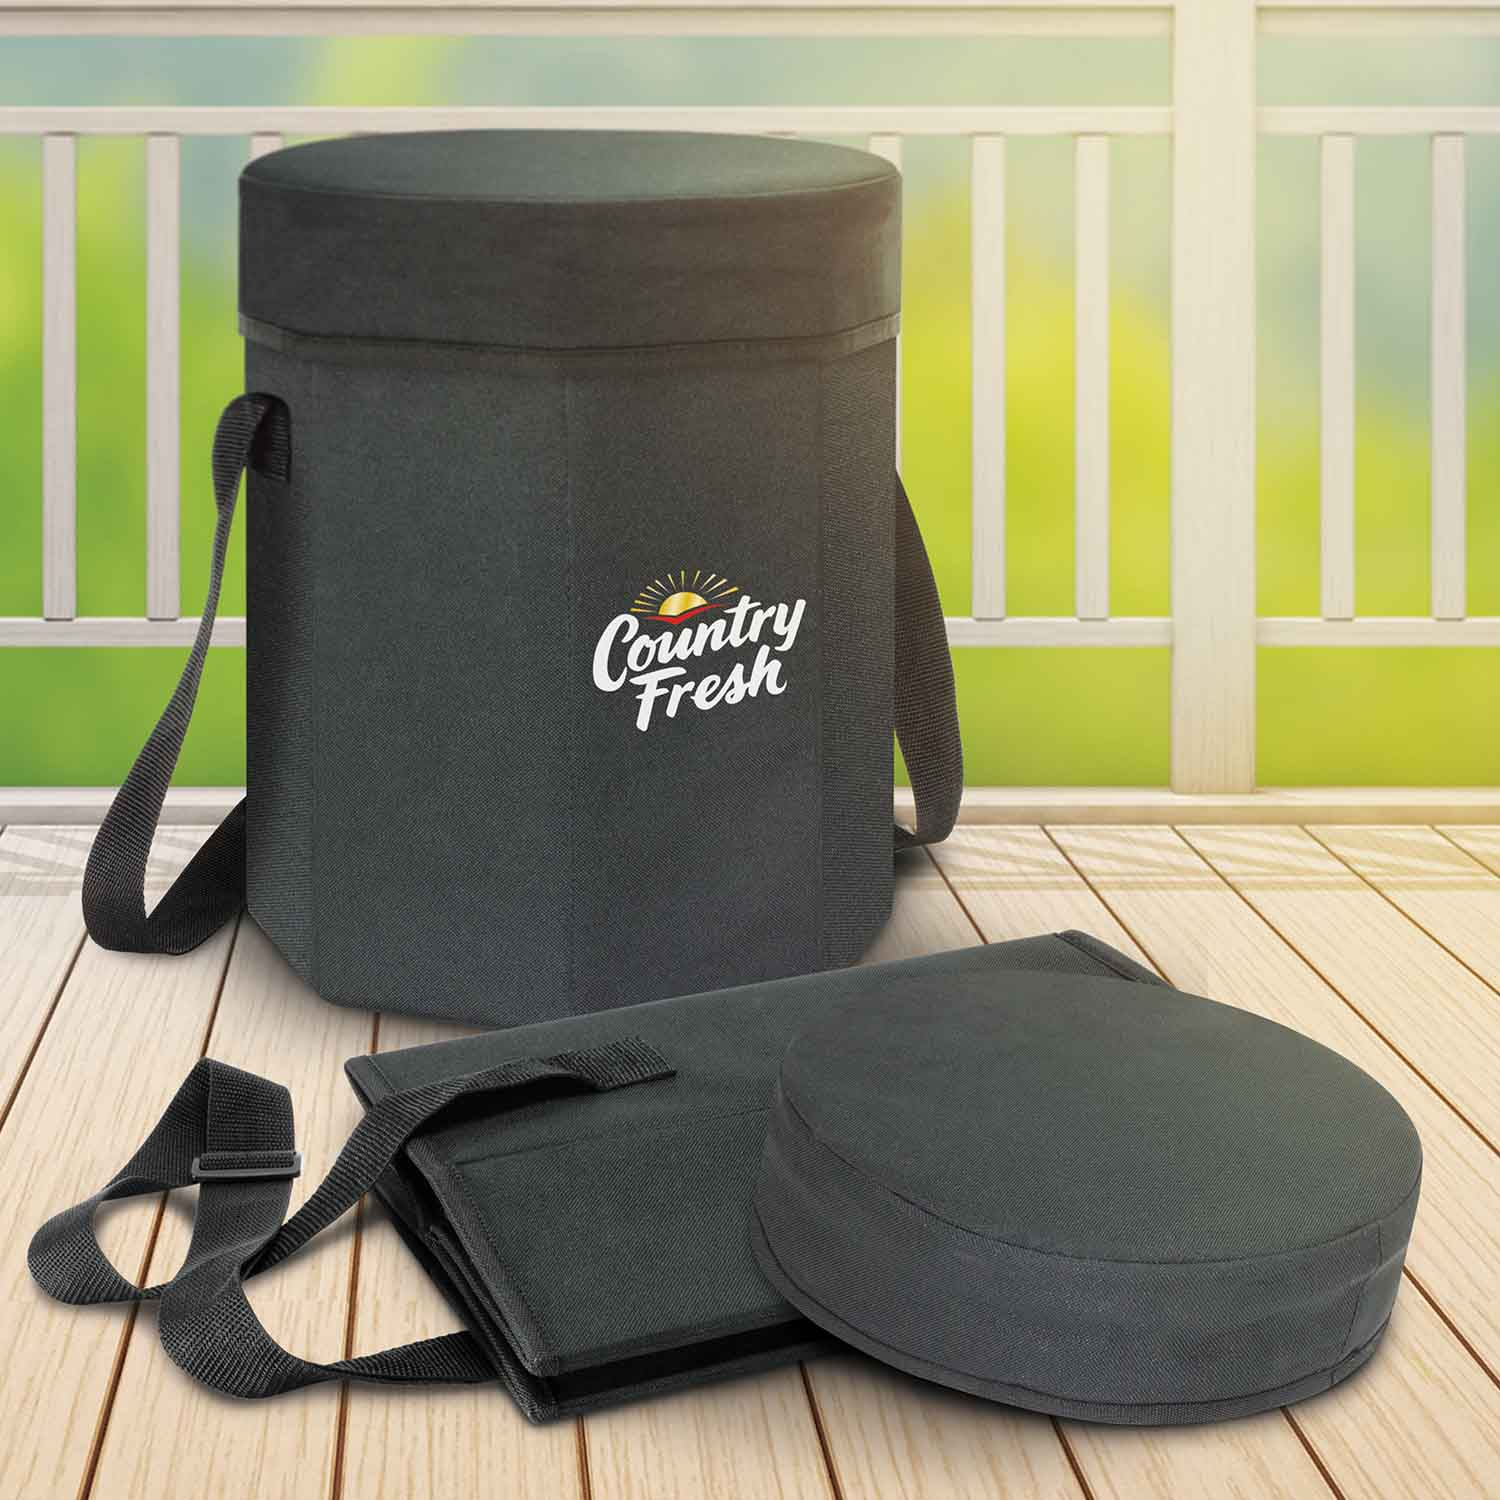 Promotional Igloo Cooler Seat Bags in Australia